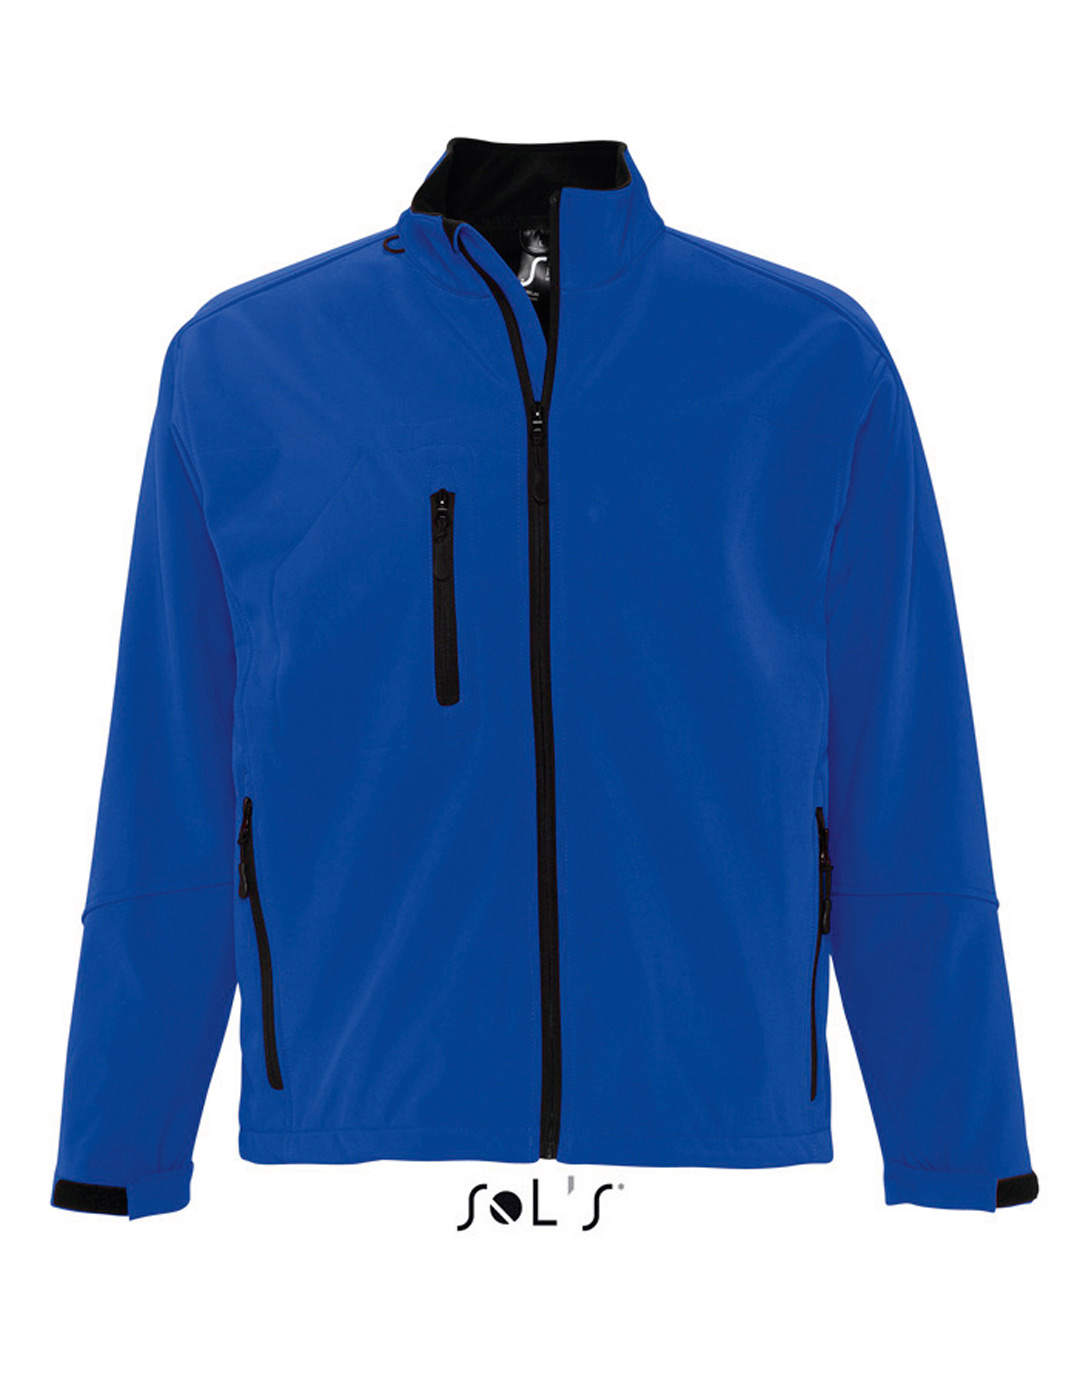 Relax 46600 royal blue a